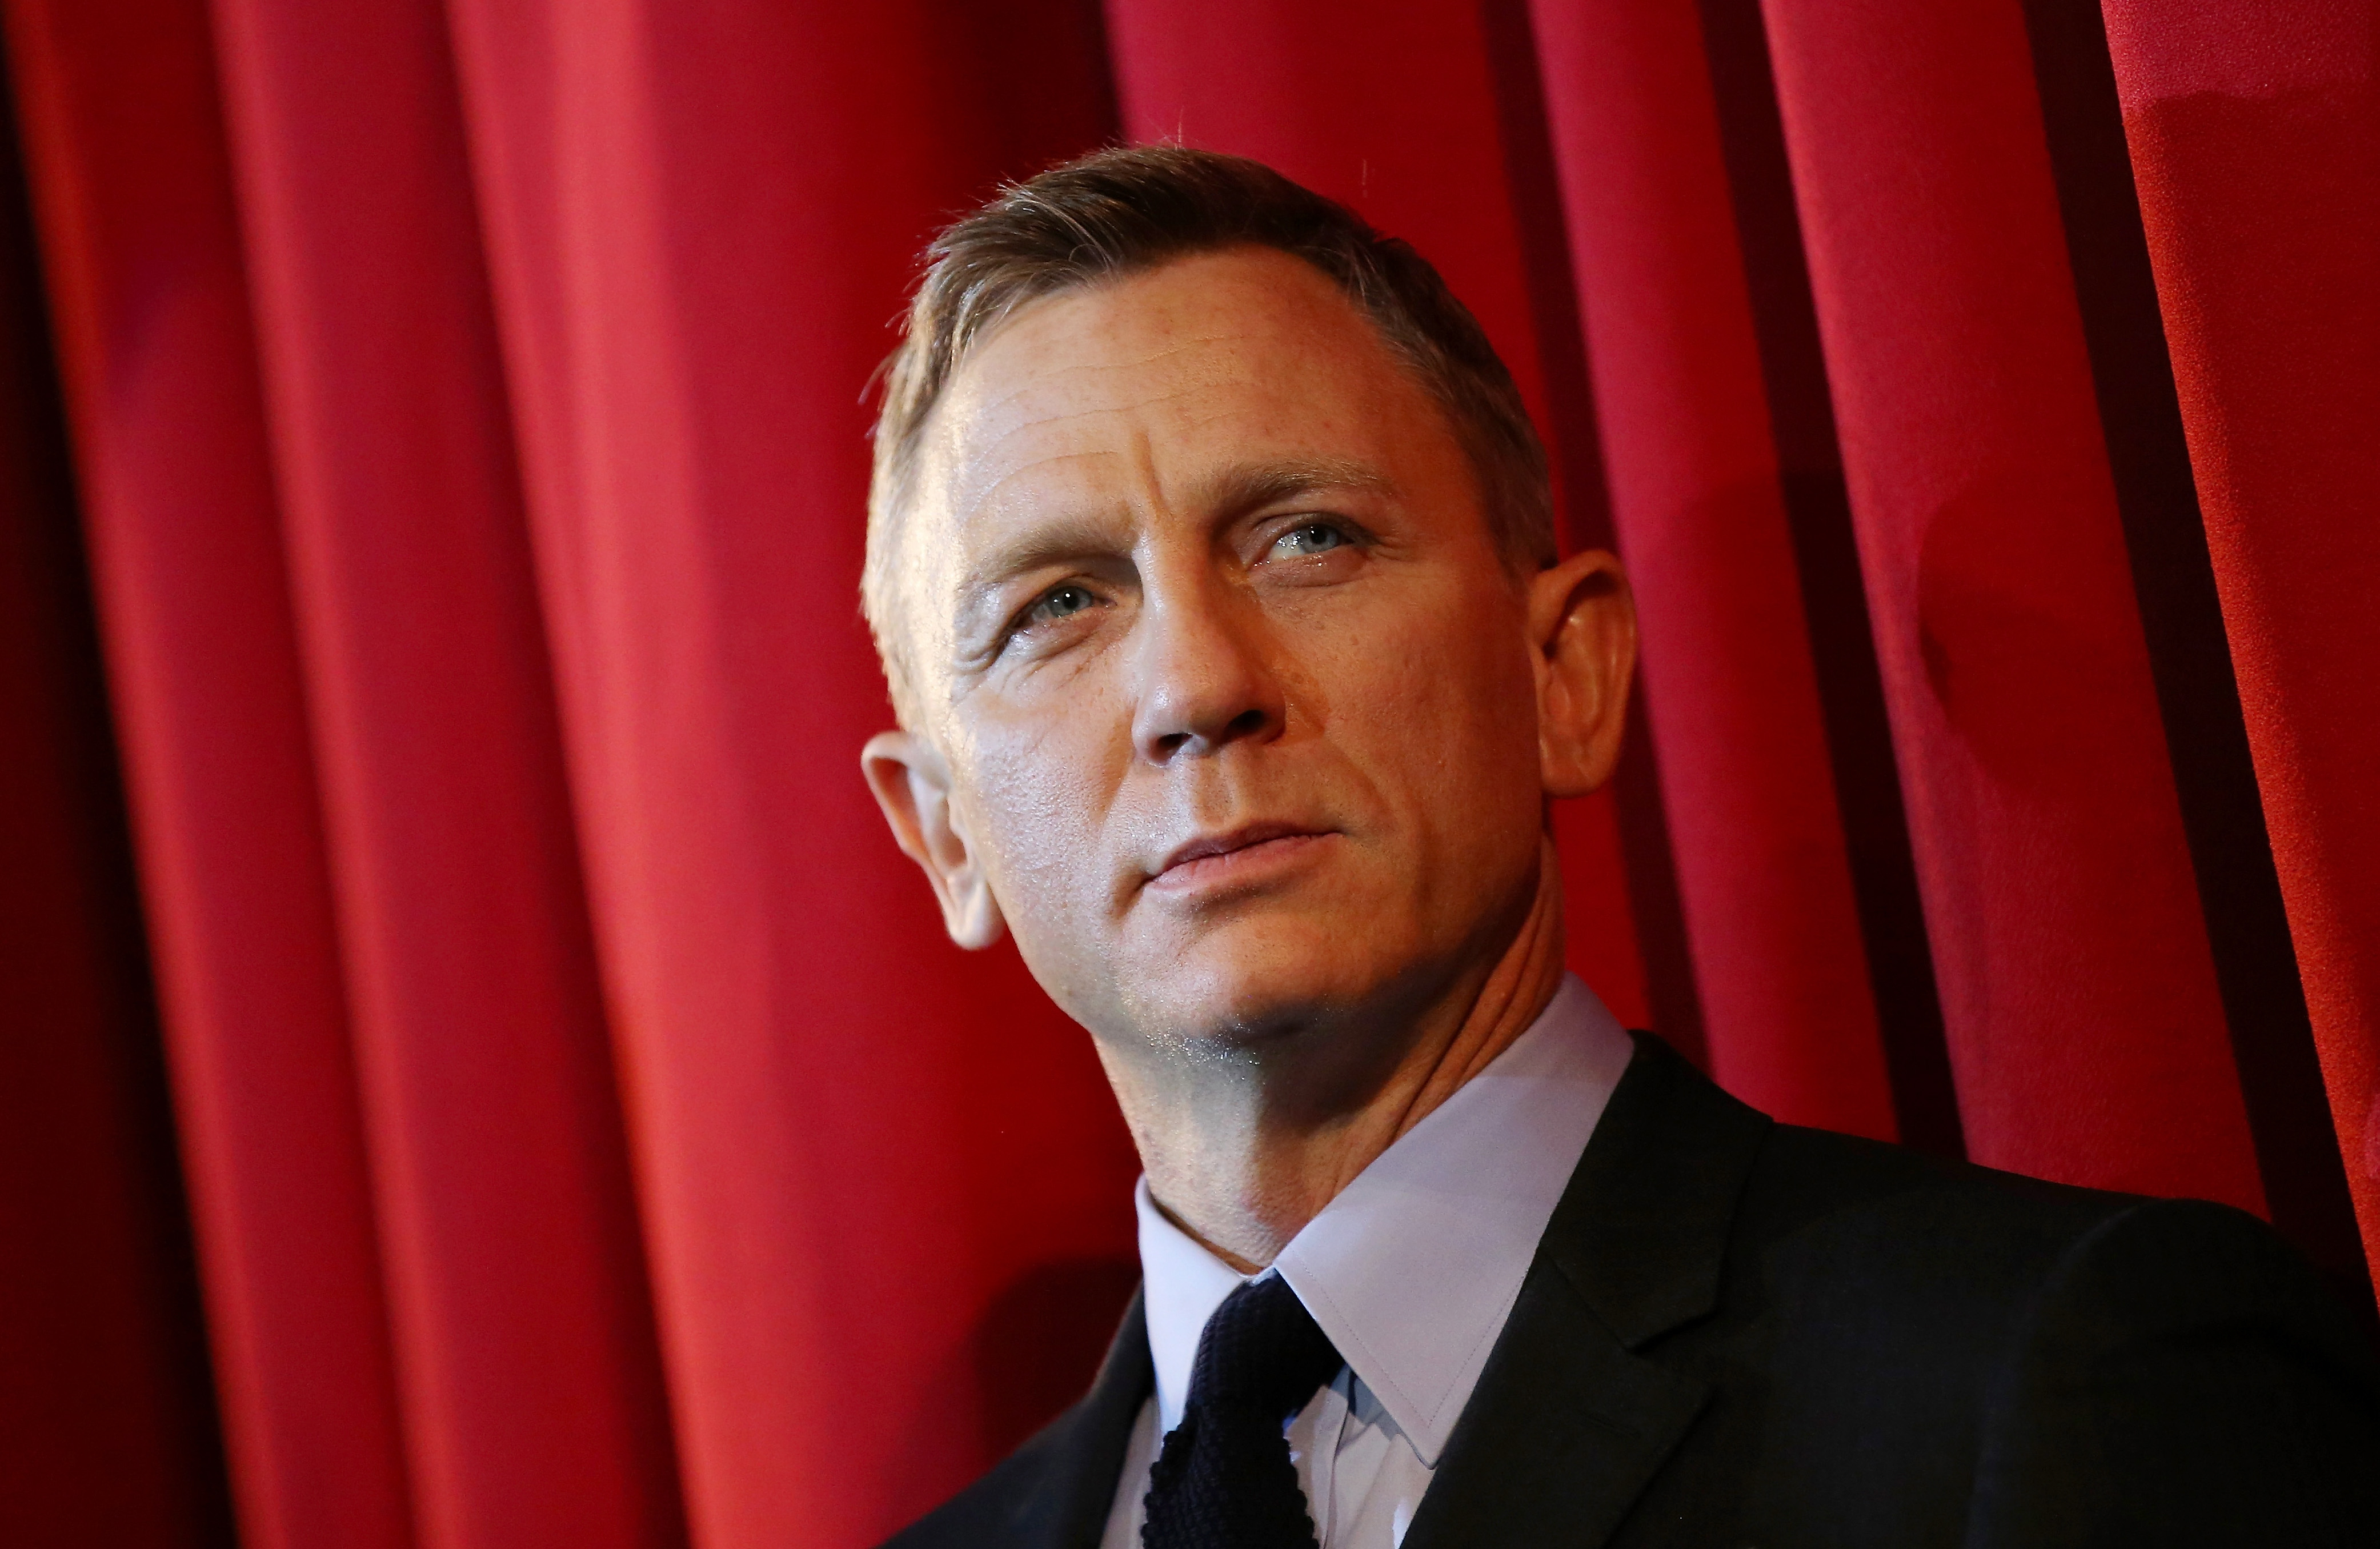 Actor Daniel Craig attends the German premiere of the new James Bond movie 'Spectre' at CineStar in Berlin, Germany. (Photo by Sean Gallup/Getty Images for Sony Pictures)